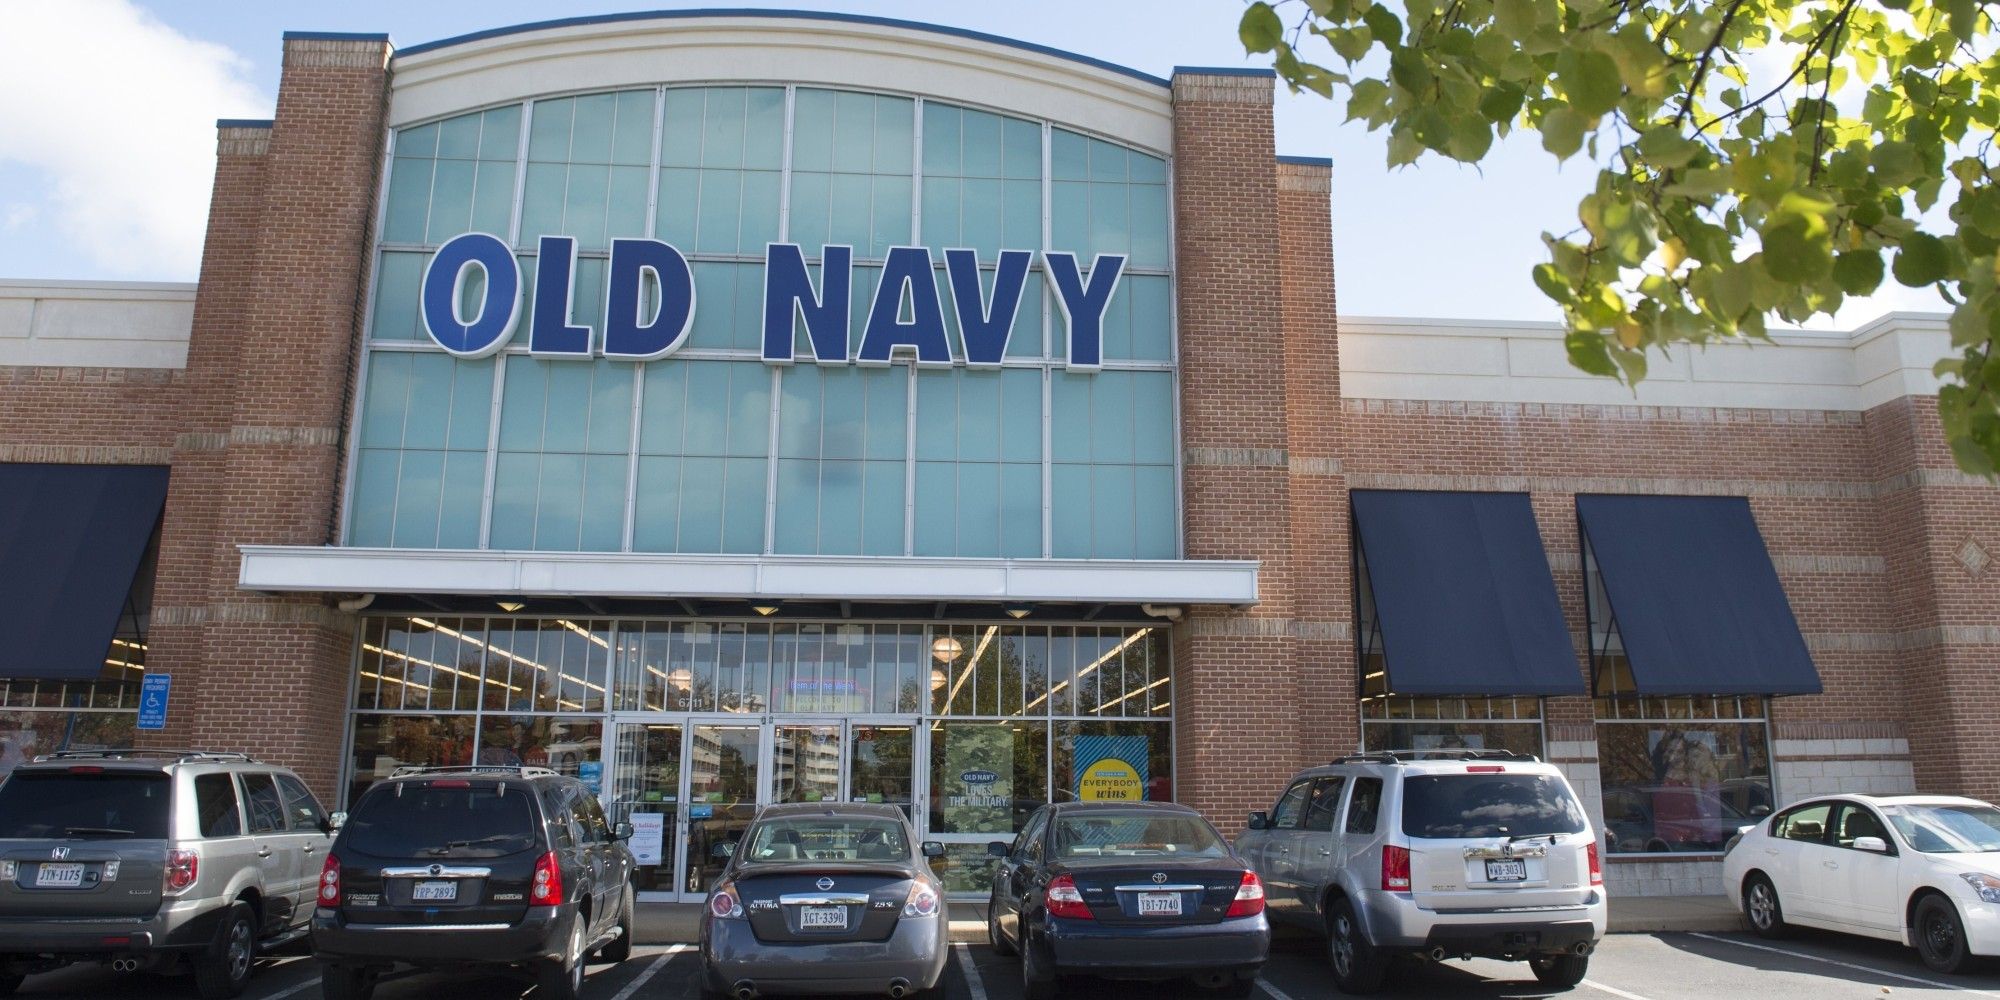 Old Navy has so many stylish silhouettes to choose from, including swing dresses, shift dresses, shirt dresses, fit & flare frocks, midi dresses, fitted sheath dresses and floor-sweeping maxi dresses.